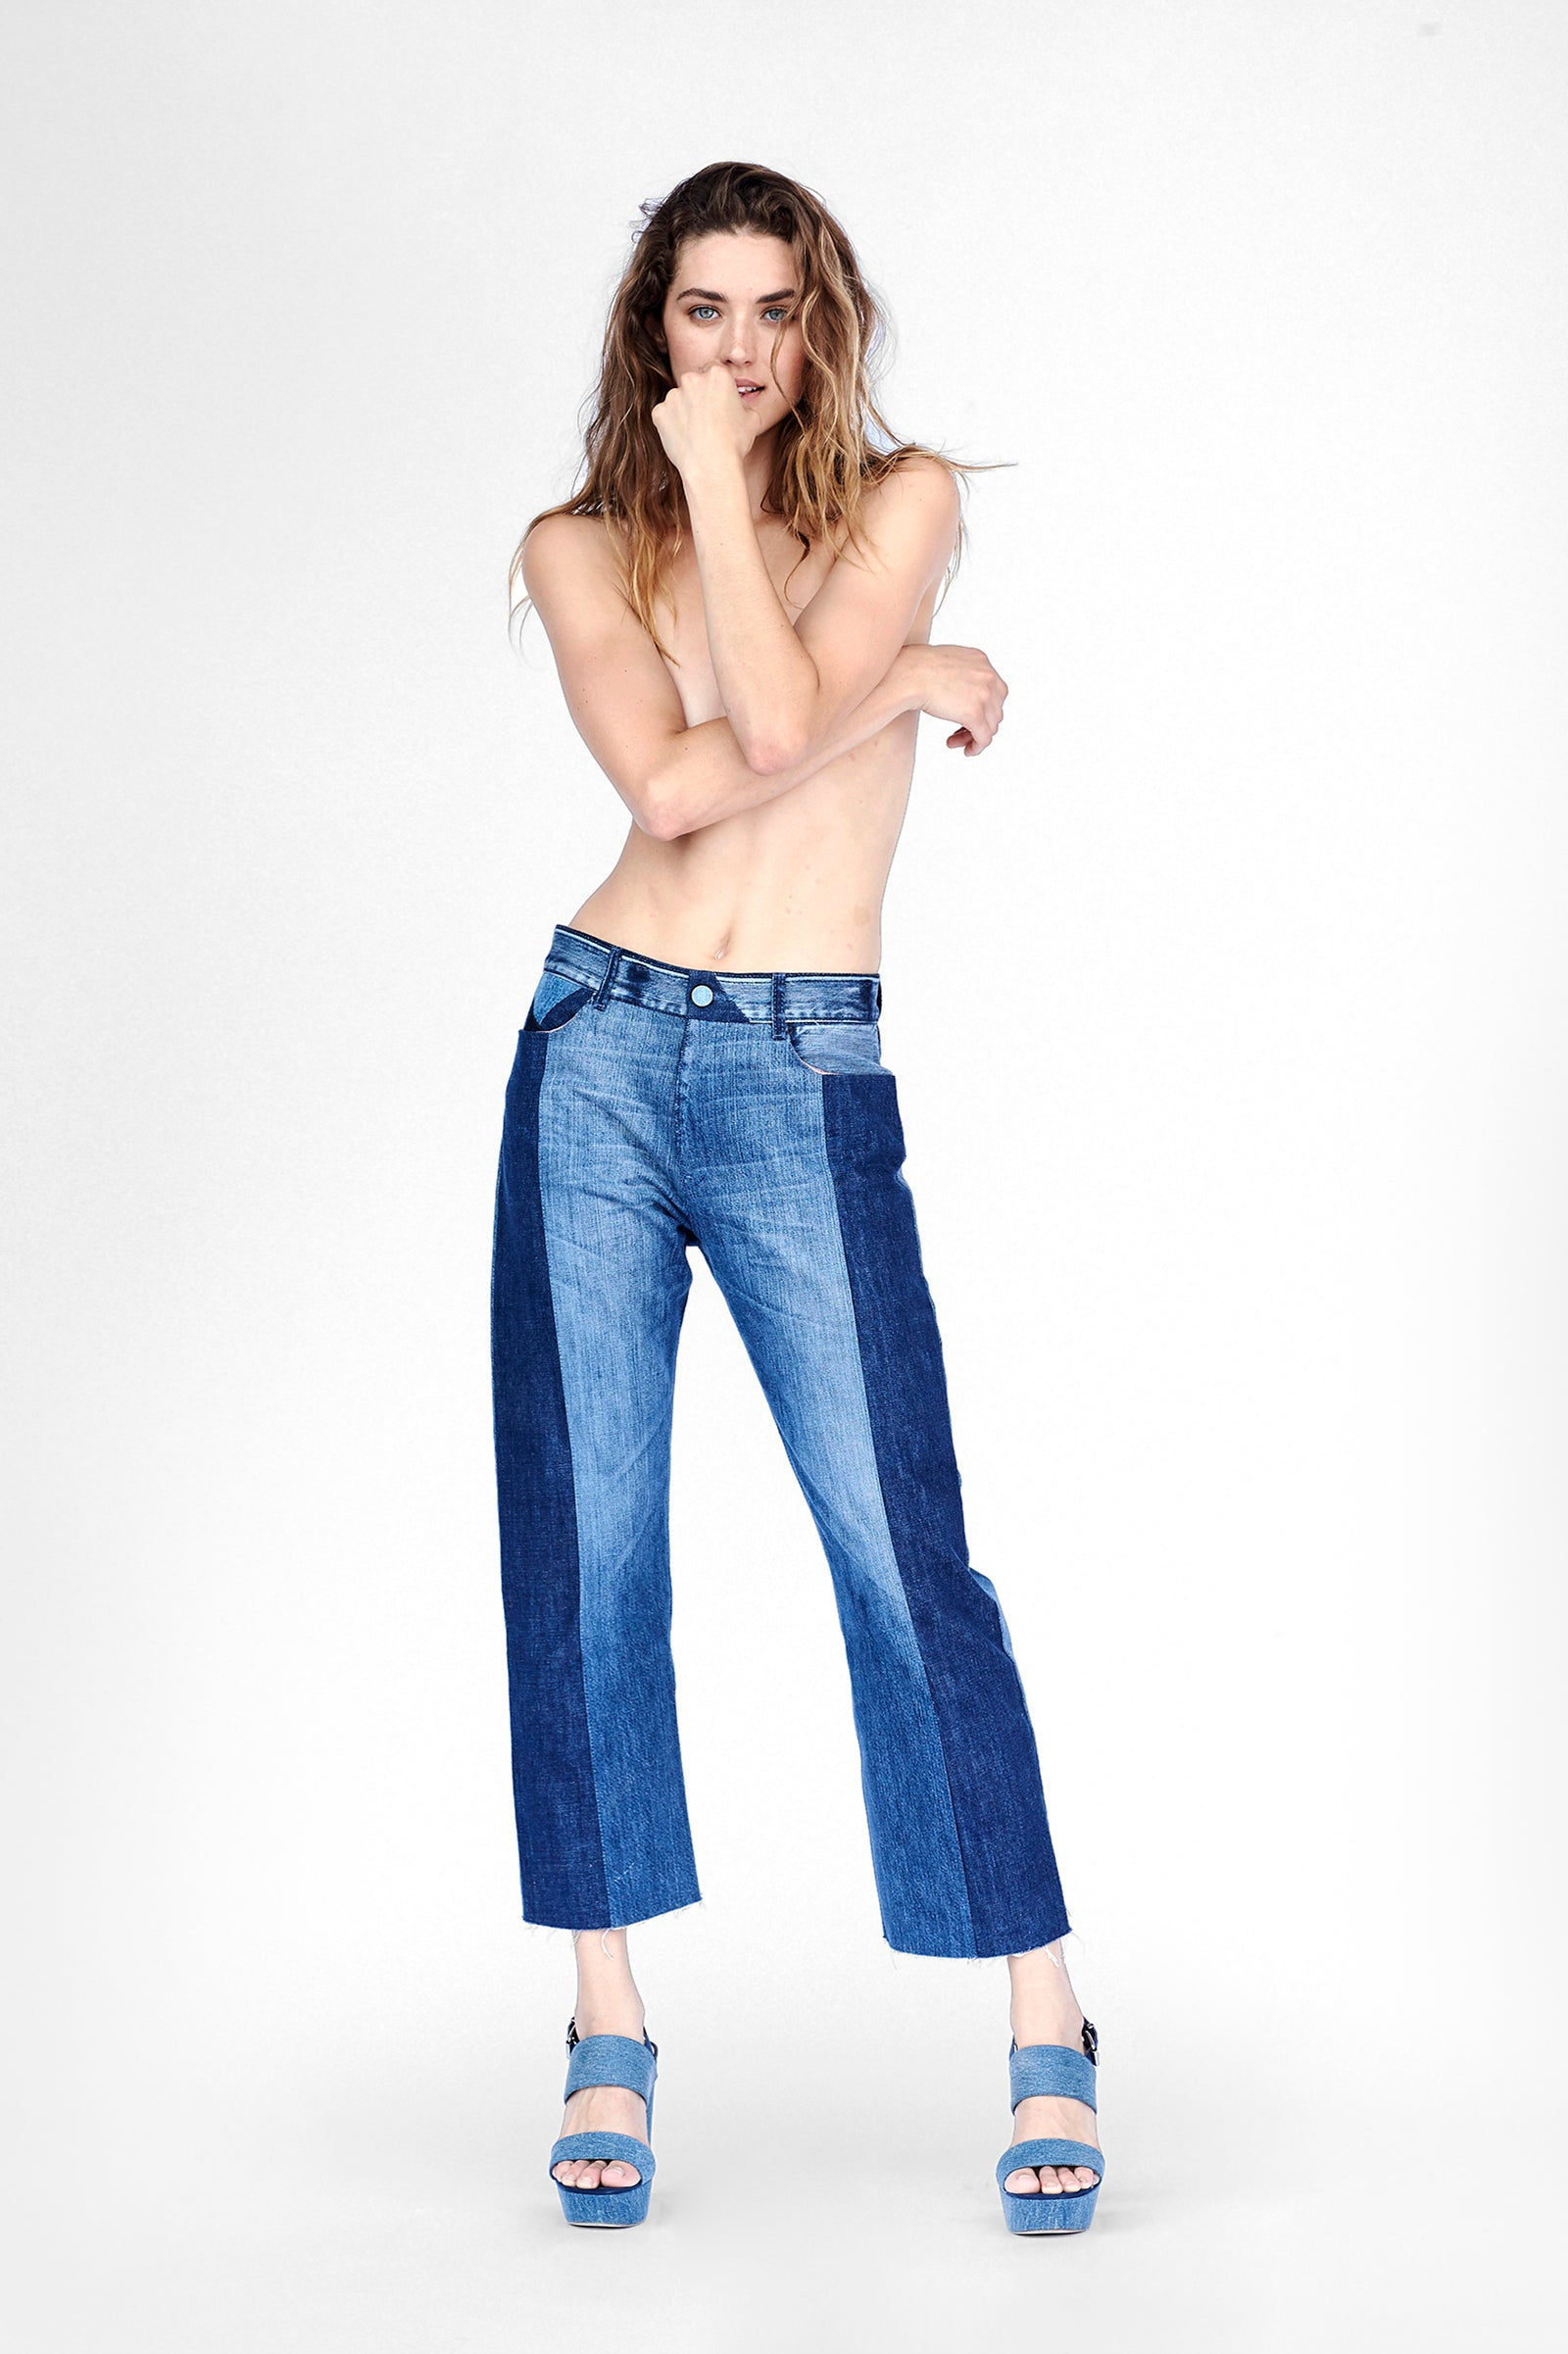 leonia cropped - size 28 - #0263